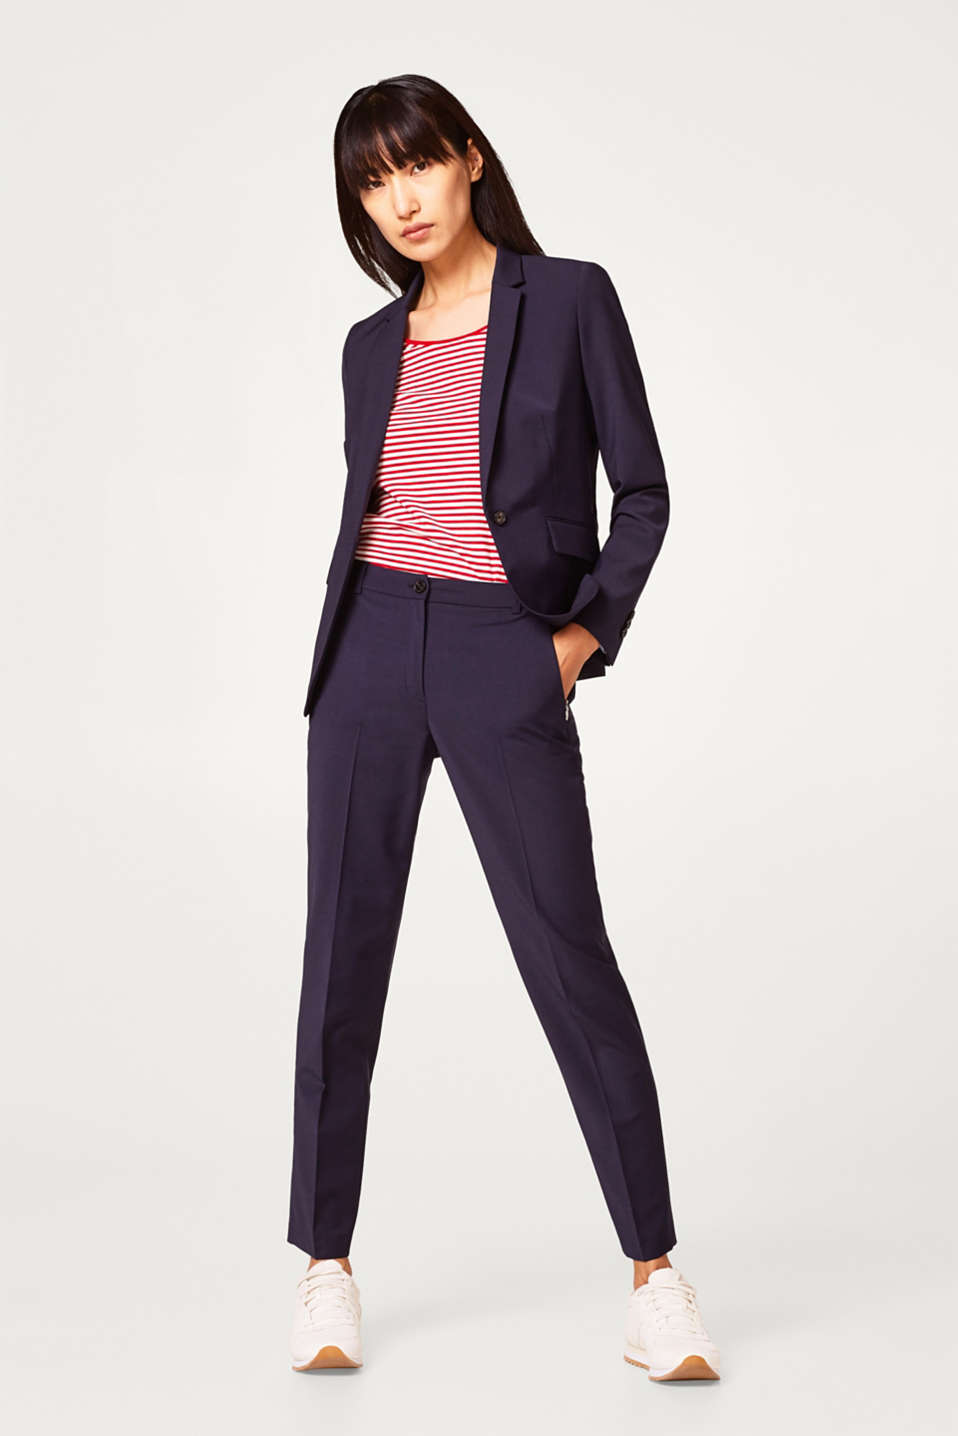 ACTIVE SUIT : pantalon à associer